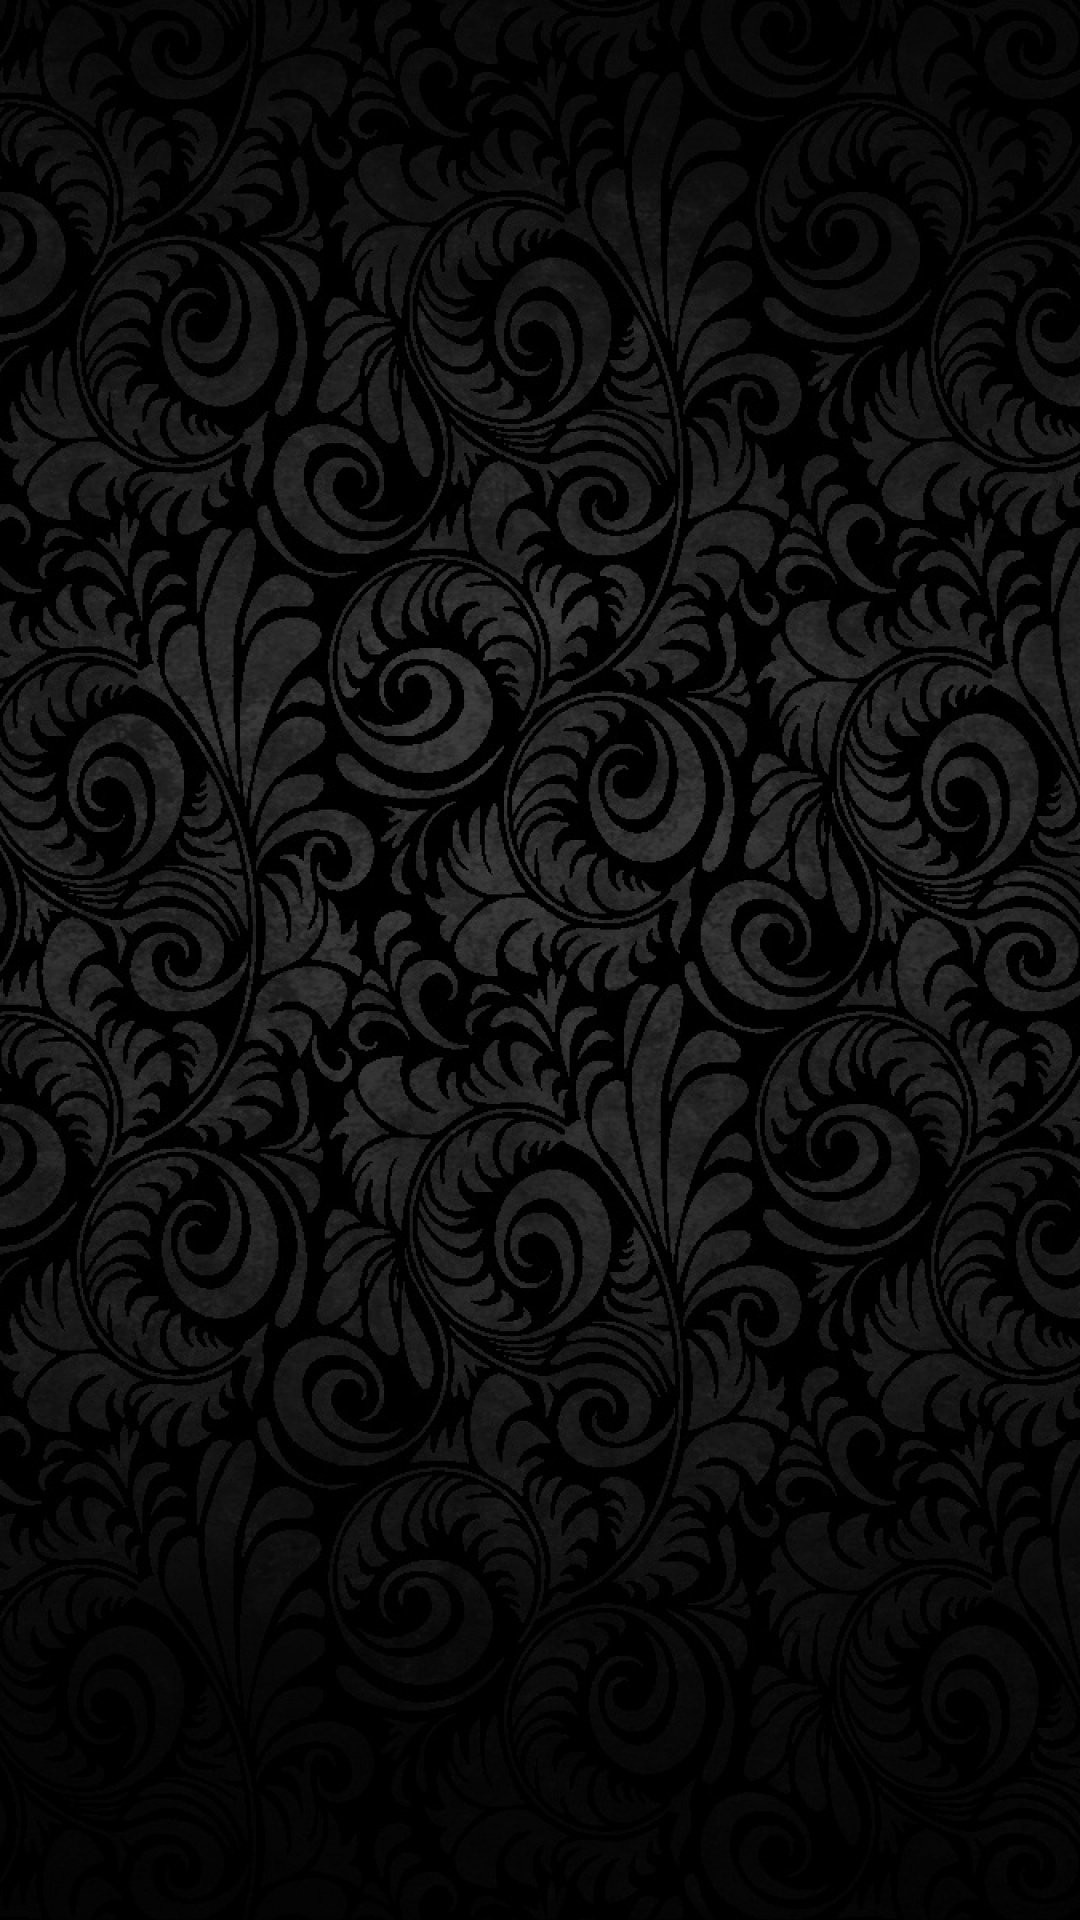 Black Wallpaper for Android 62 images